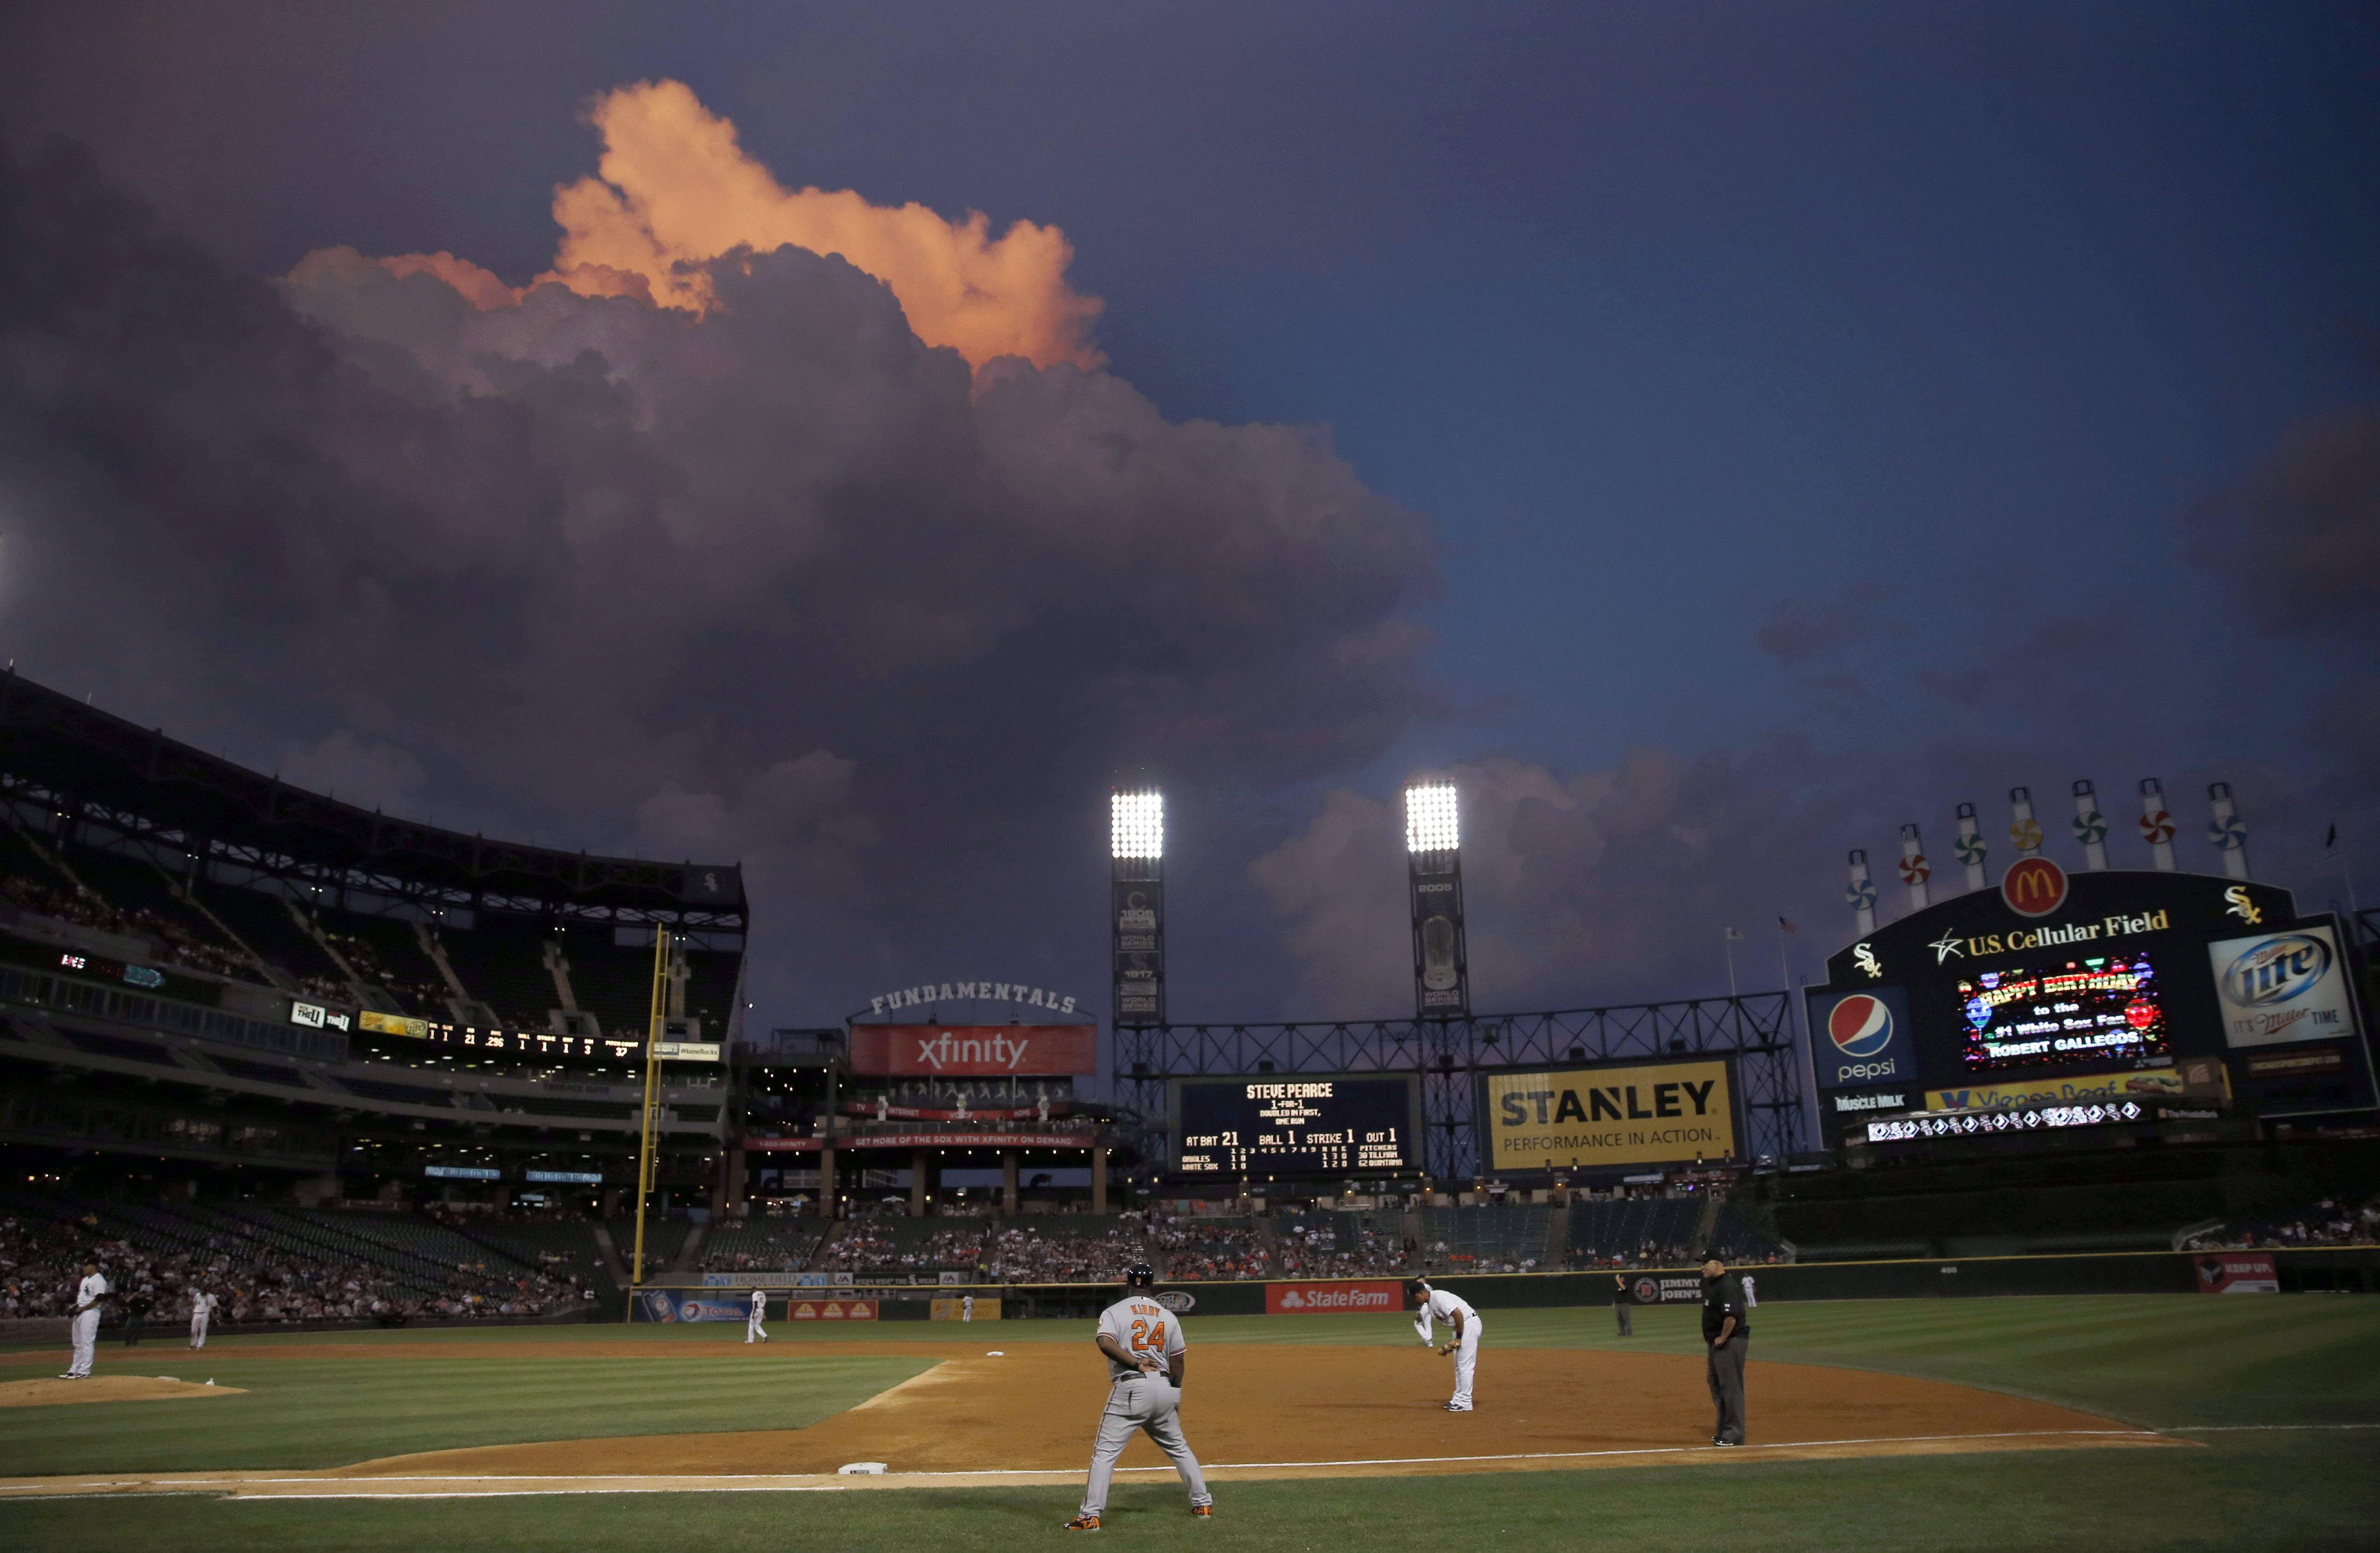 The setting sun lights up storm clouds as they drift over Lake Michigan near U.S. Cellular Field during the third inning of a baseball game between the Chicago White Sox and the Baltimore Orioles, Tuesday, Aug. 19, 2014, in Chicago. (AP Photo/Charles Rex Arbogast)